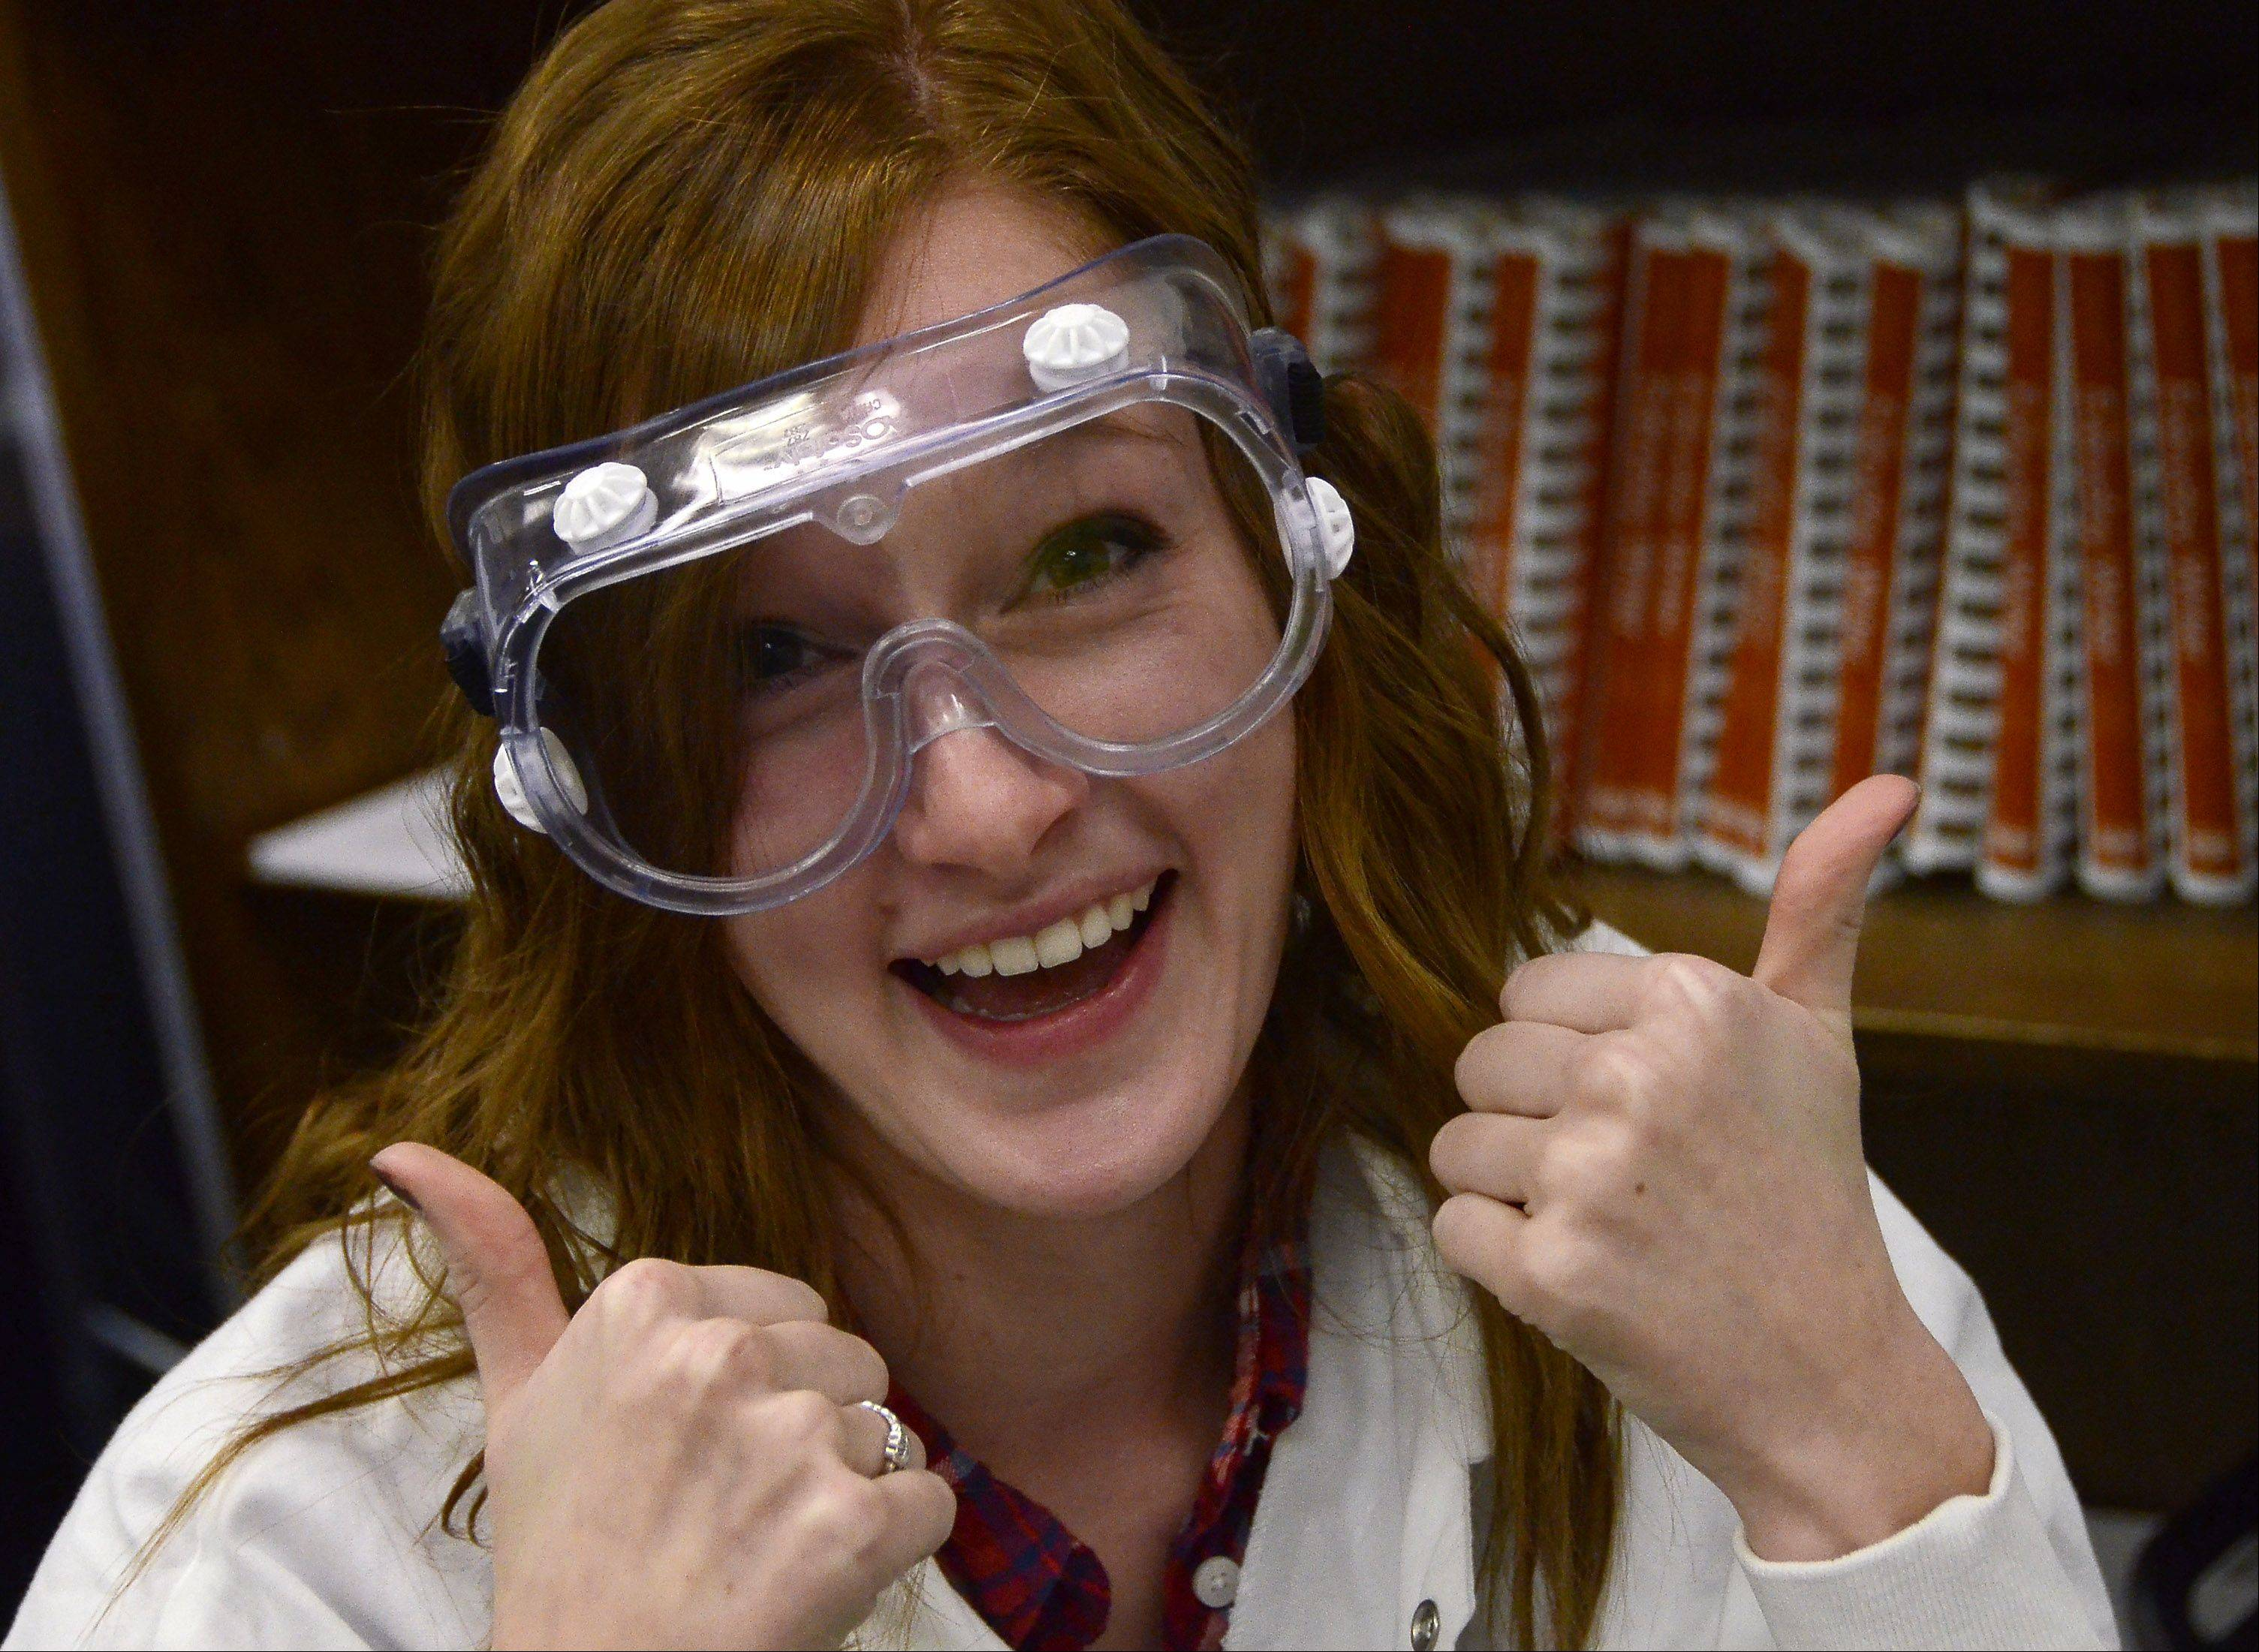 The keep things light and informal, tutors working in the Literacy Lab at Buffalo Grove High School, like Alexandra Anderson, wear goggles and lab coats.